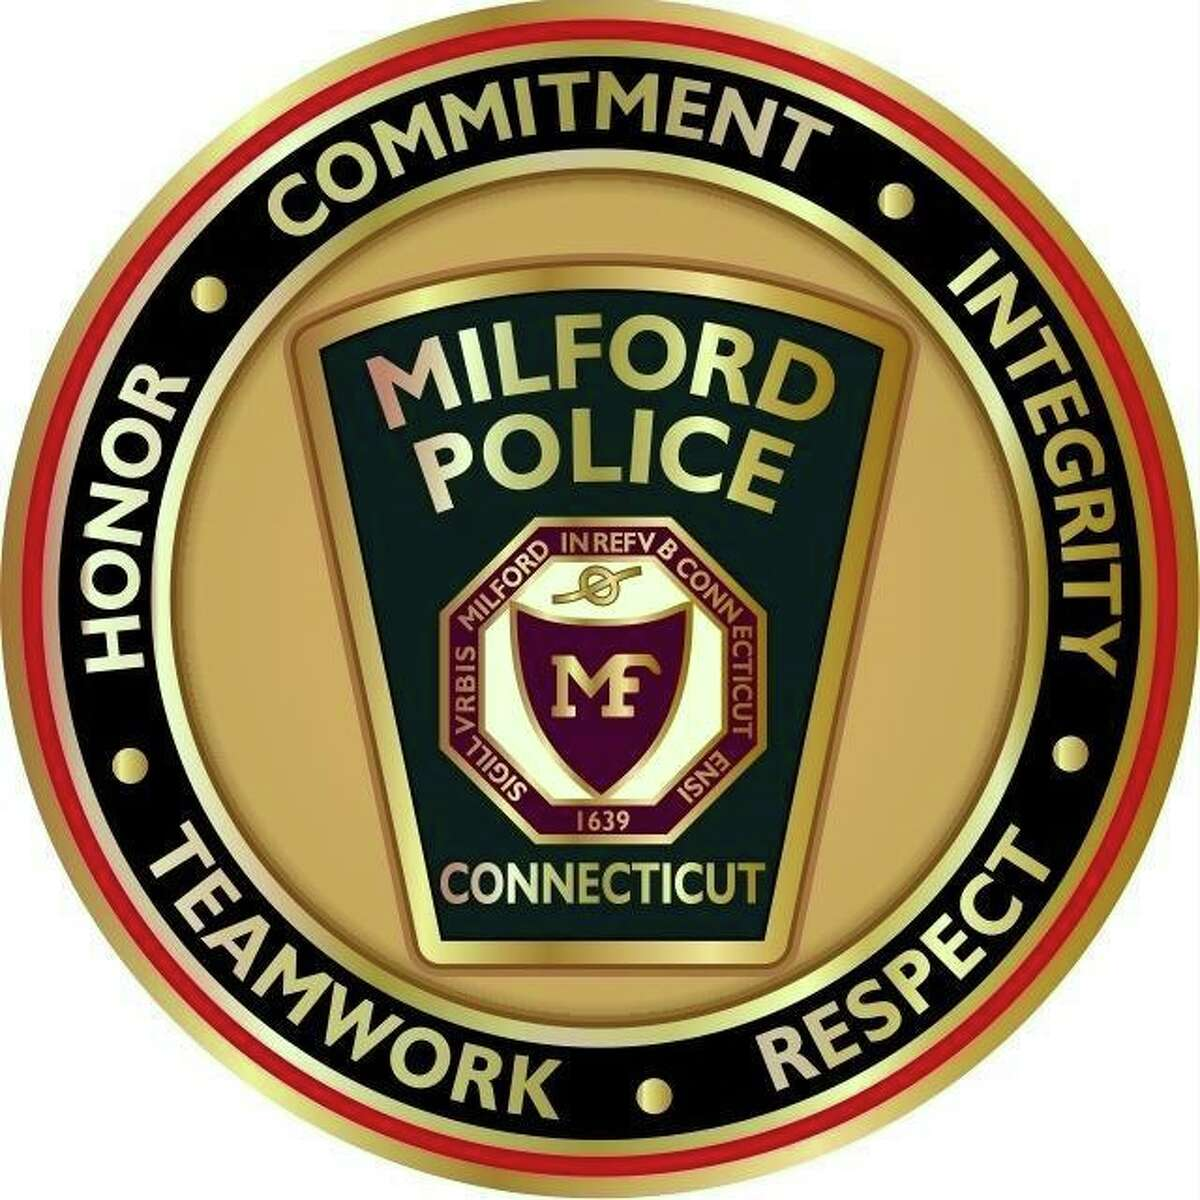 The Milford Police Department's annual Police Auction will be held on Saturday, Oct. 12.